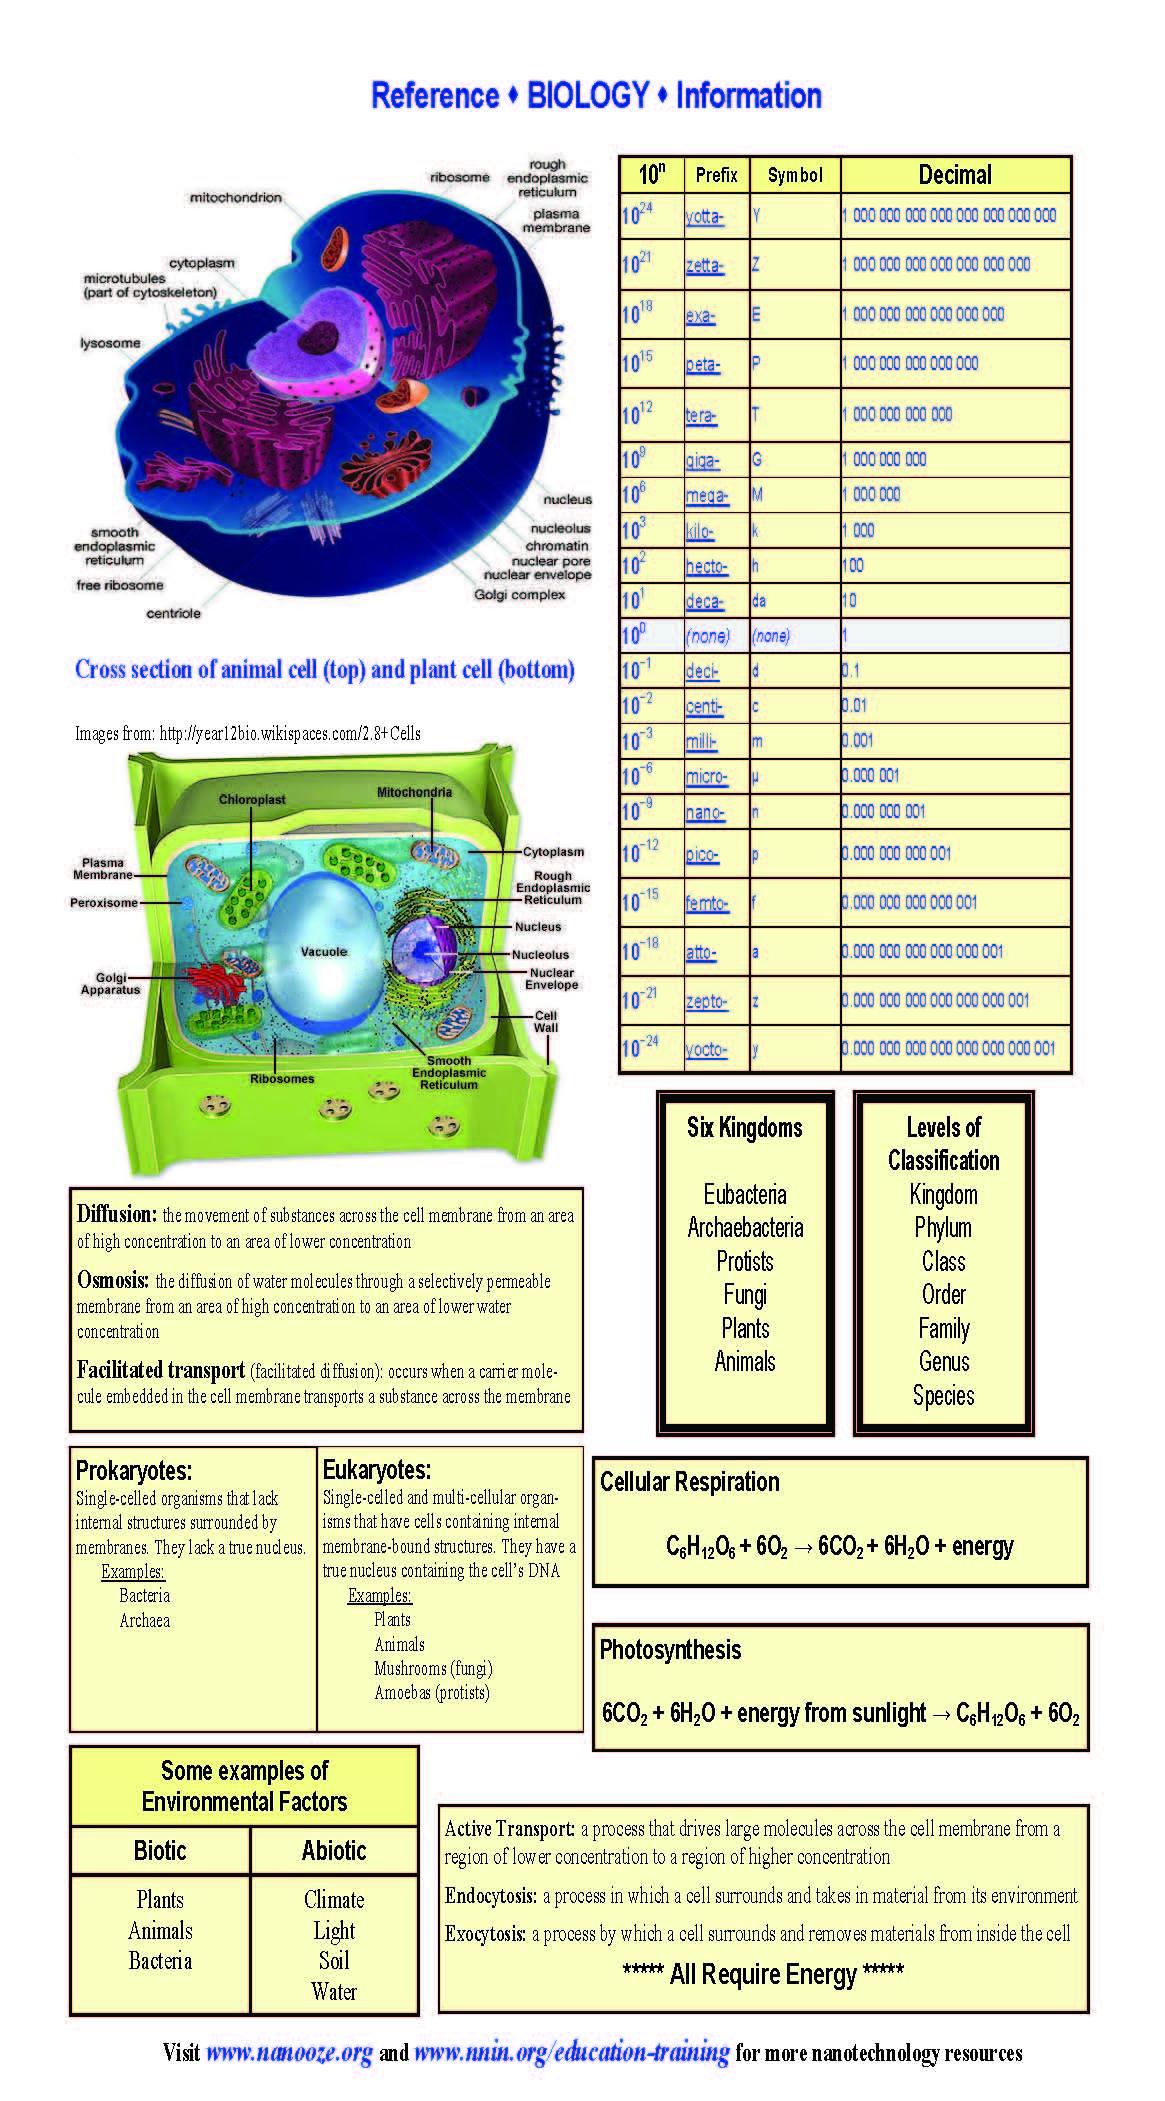 biology reference sheets national nanotechnology infrastructure